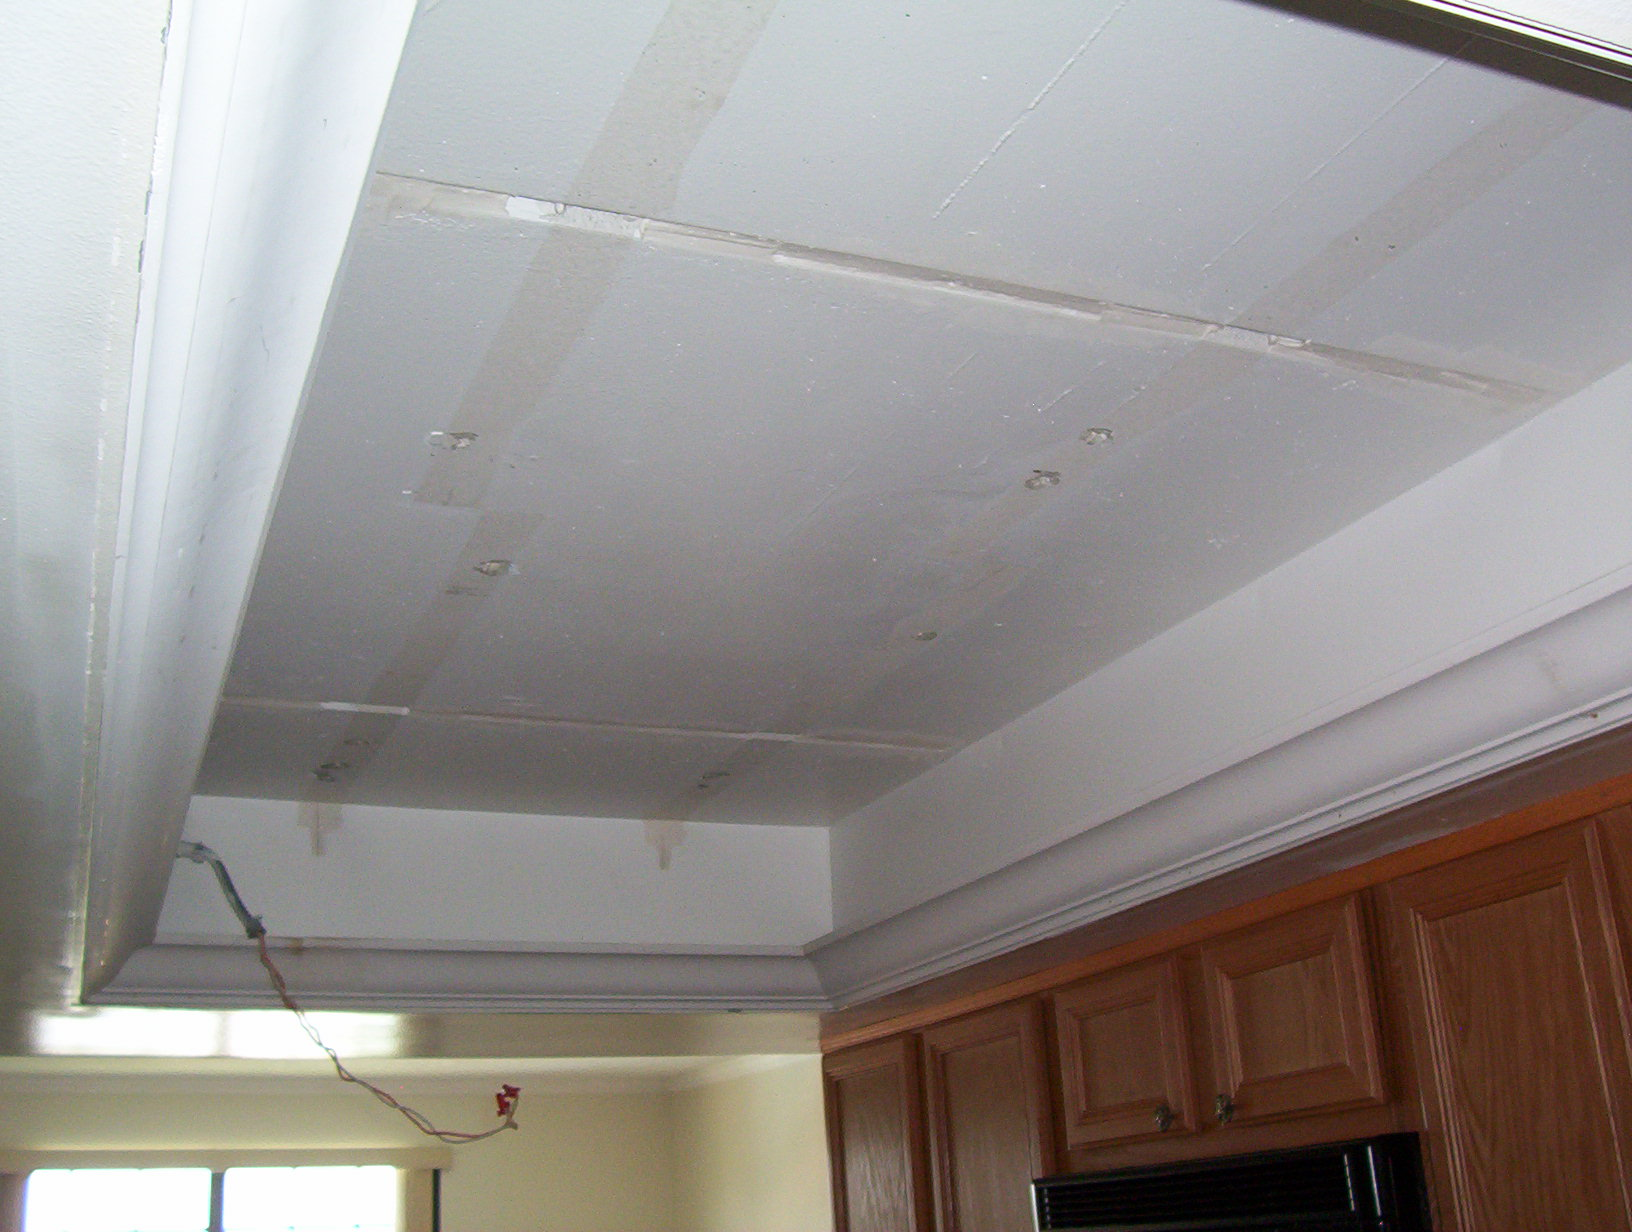 Kitchen Ceiling Light Removed